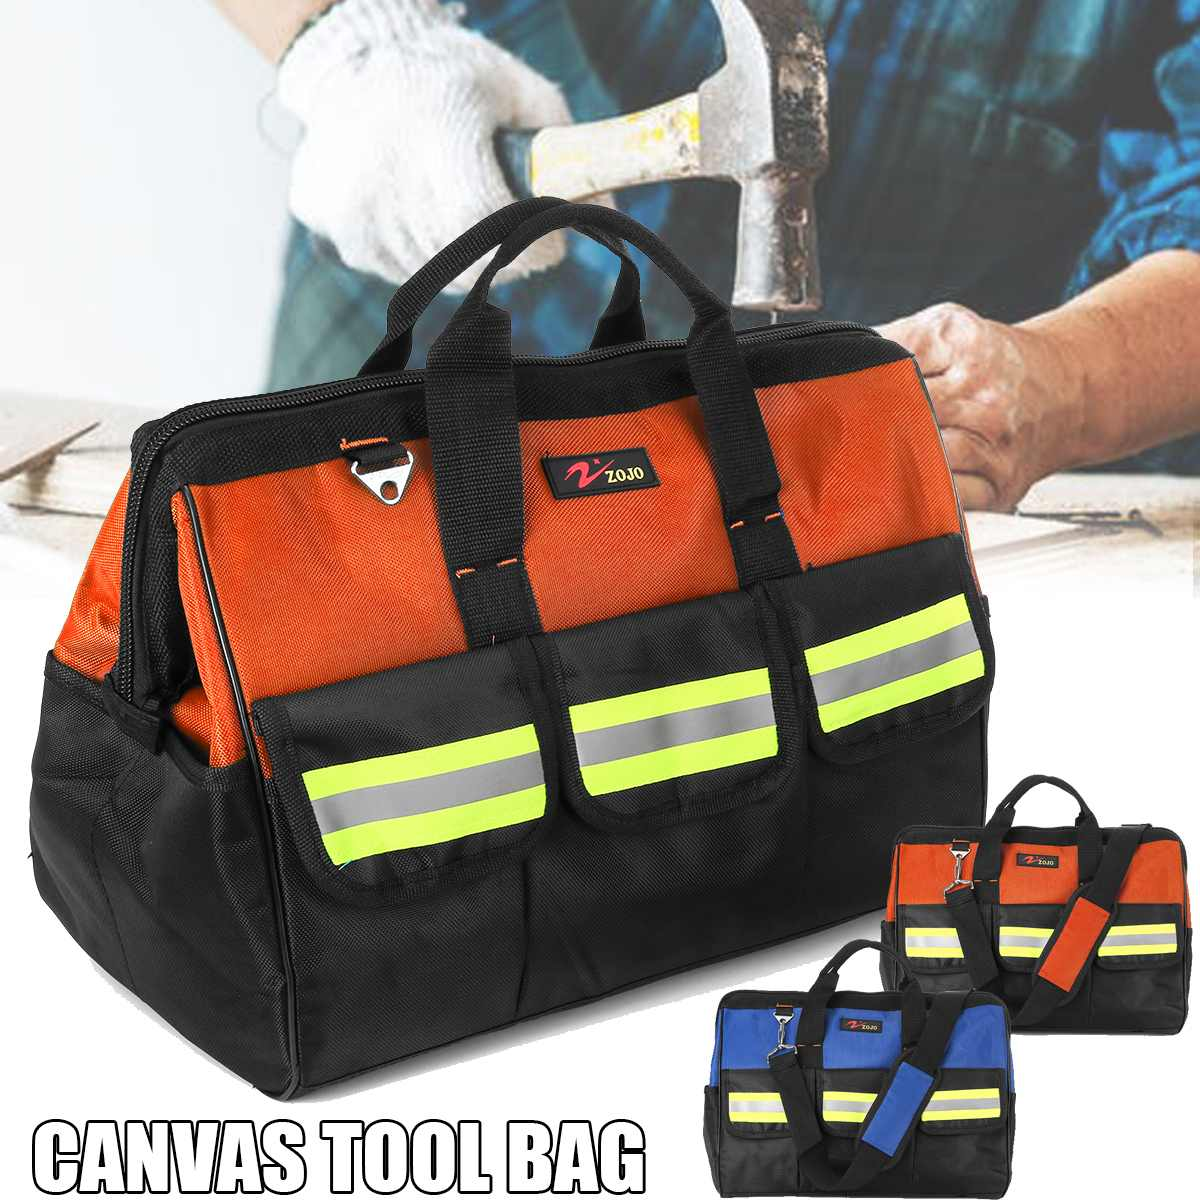 Tool Organizers Hearty Hand Organizer Drill Storage Tool Bag Screws Nails Parts Pouch Bit Hardware Canvas Electrician